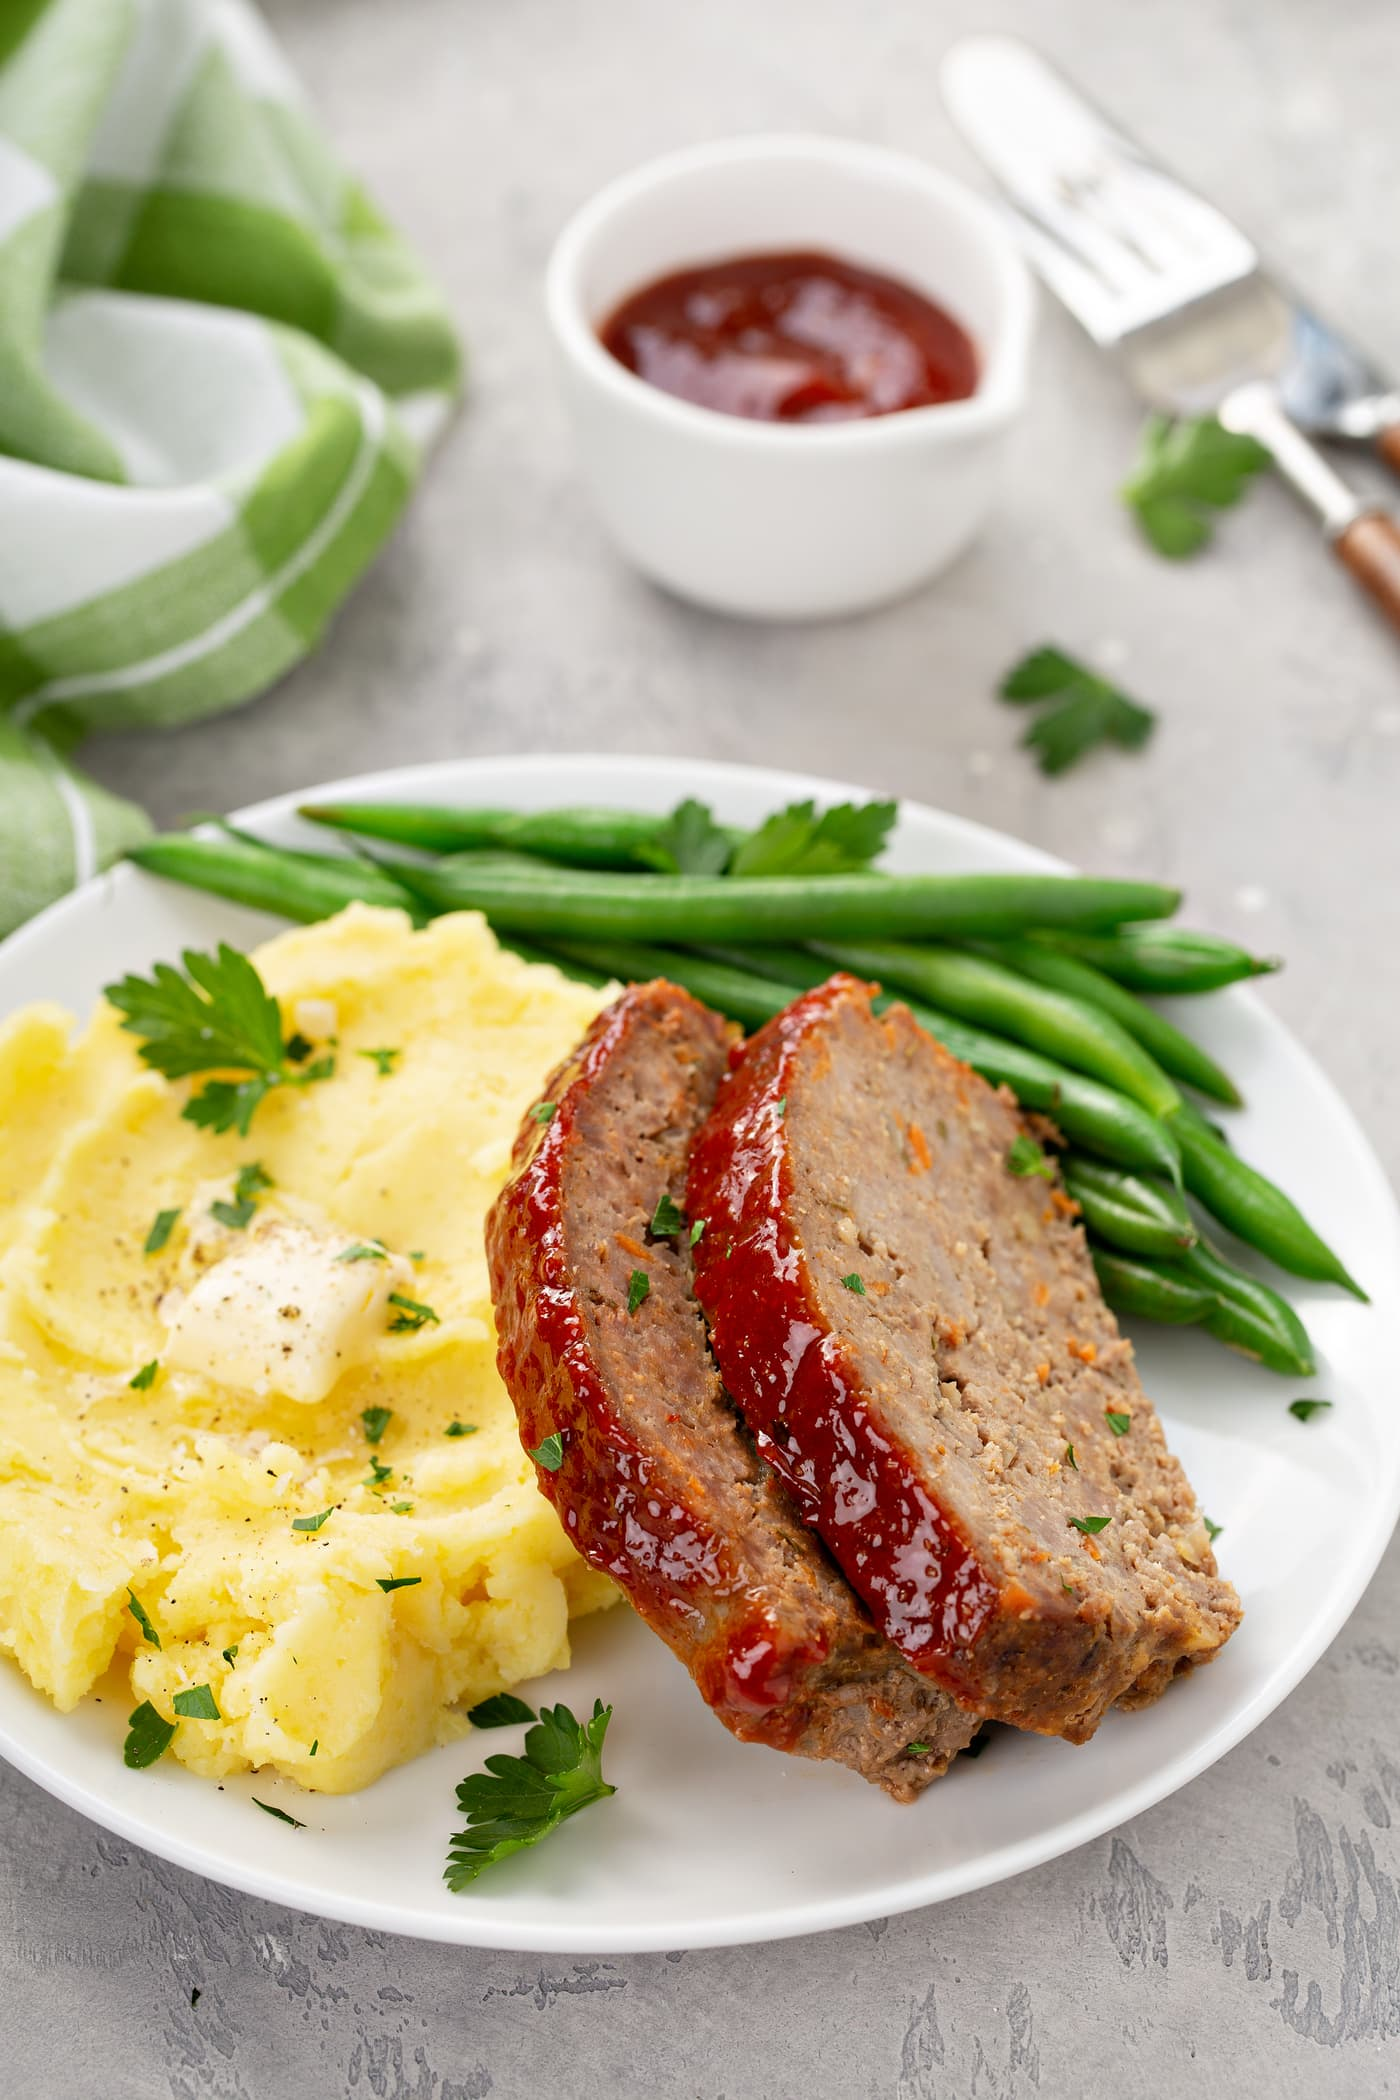 A white dinner plate containing two slices of meatloaf, green beans, mashed potatoes topped with melting butter. A green plaid napkin and a container of red glaze is in the background.